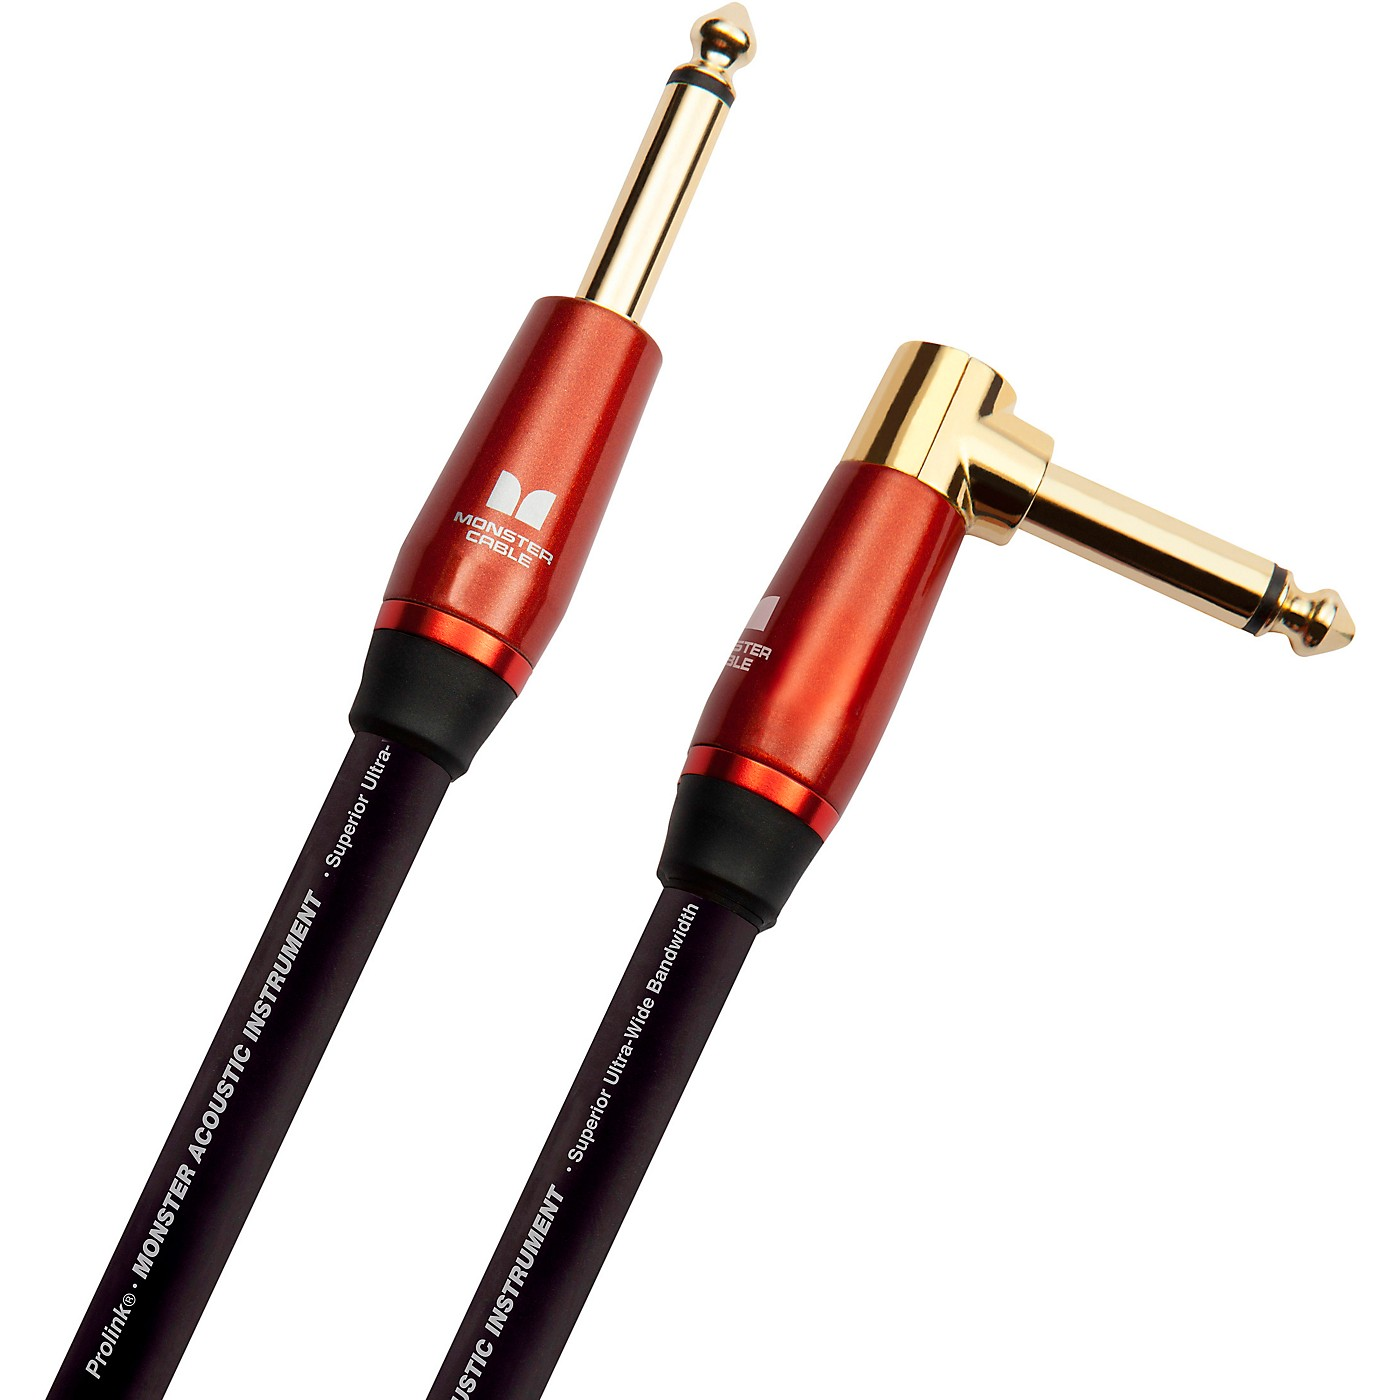 Monster Cable Prolink Acoustic Pro Audio Instrument Cable, Right Angle to Straight thumbnail